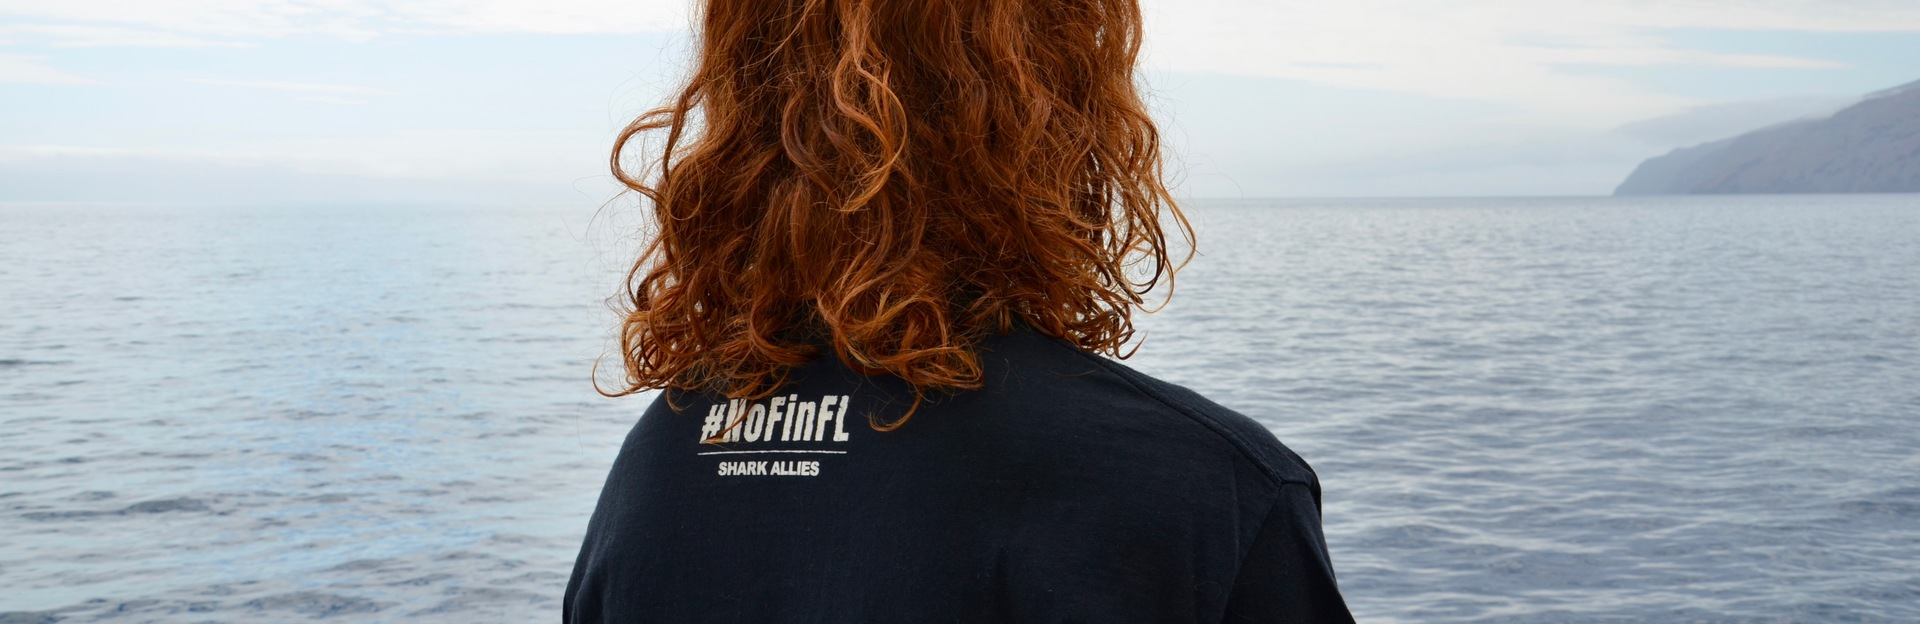 Shark Allies #NoFinFL Store